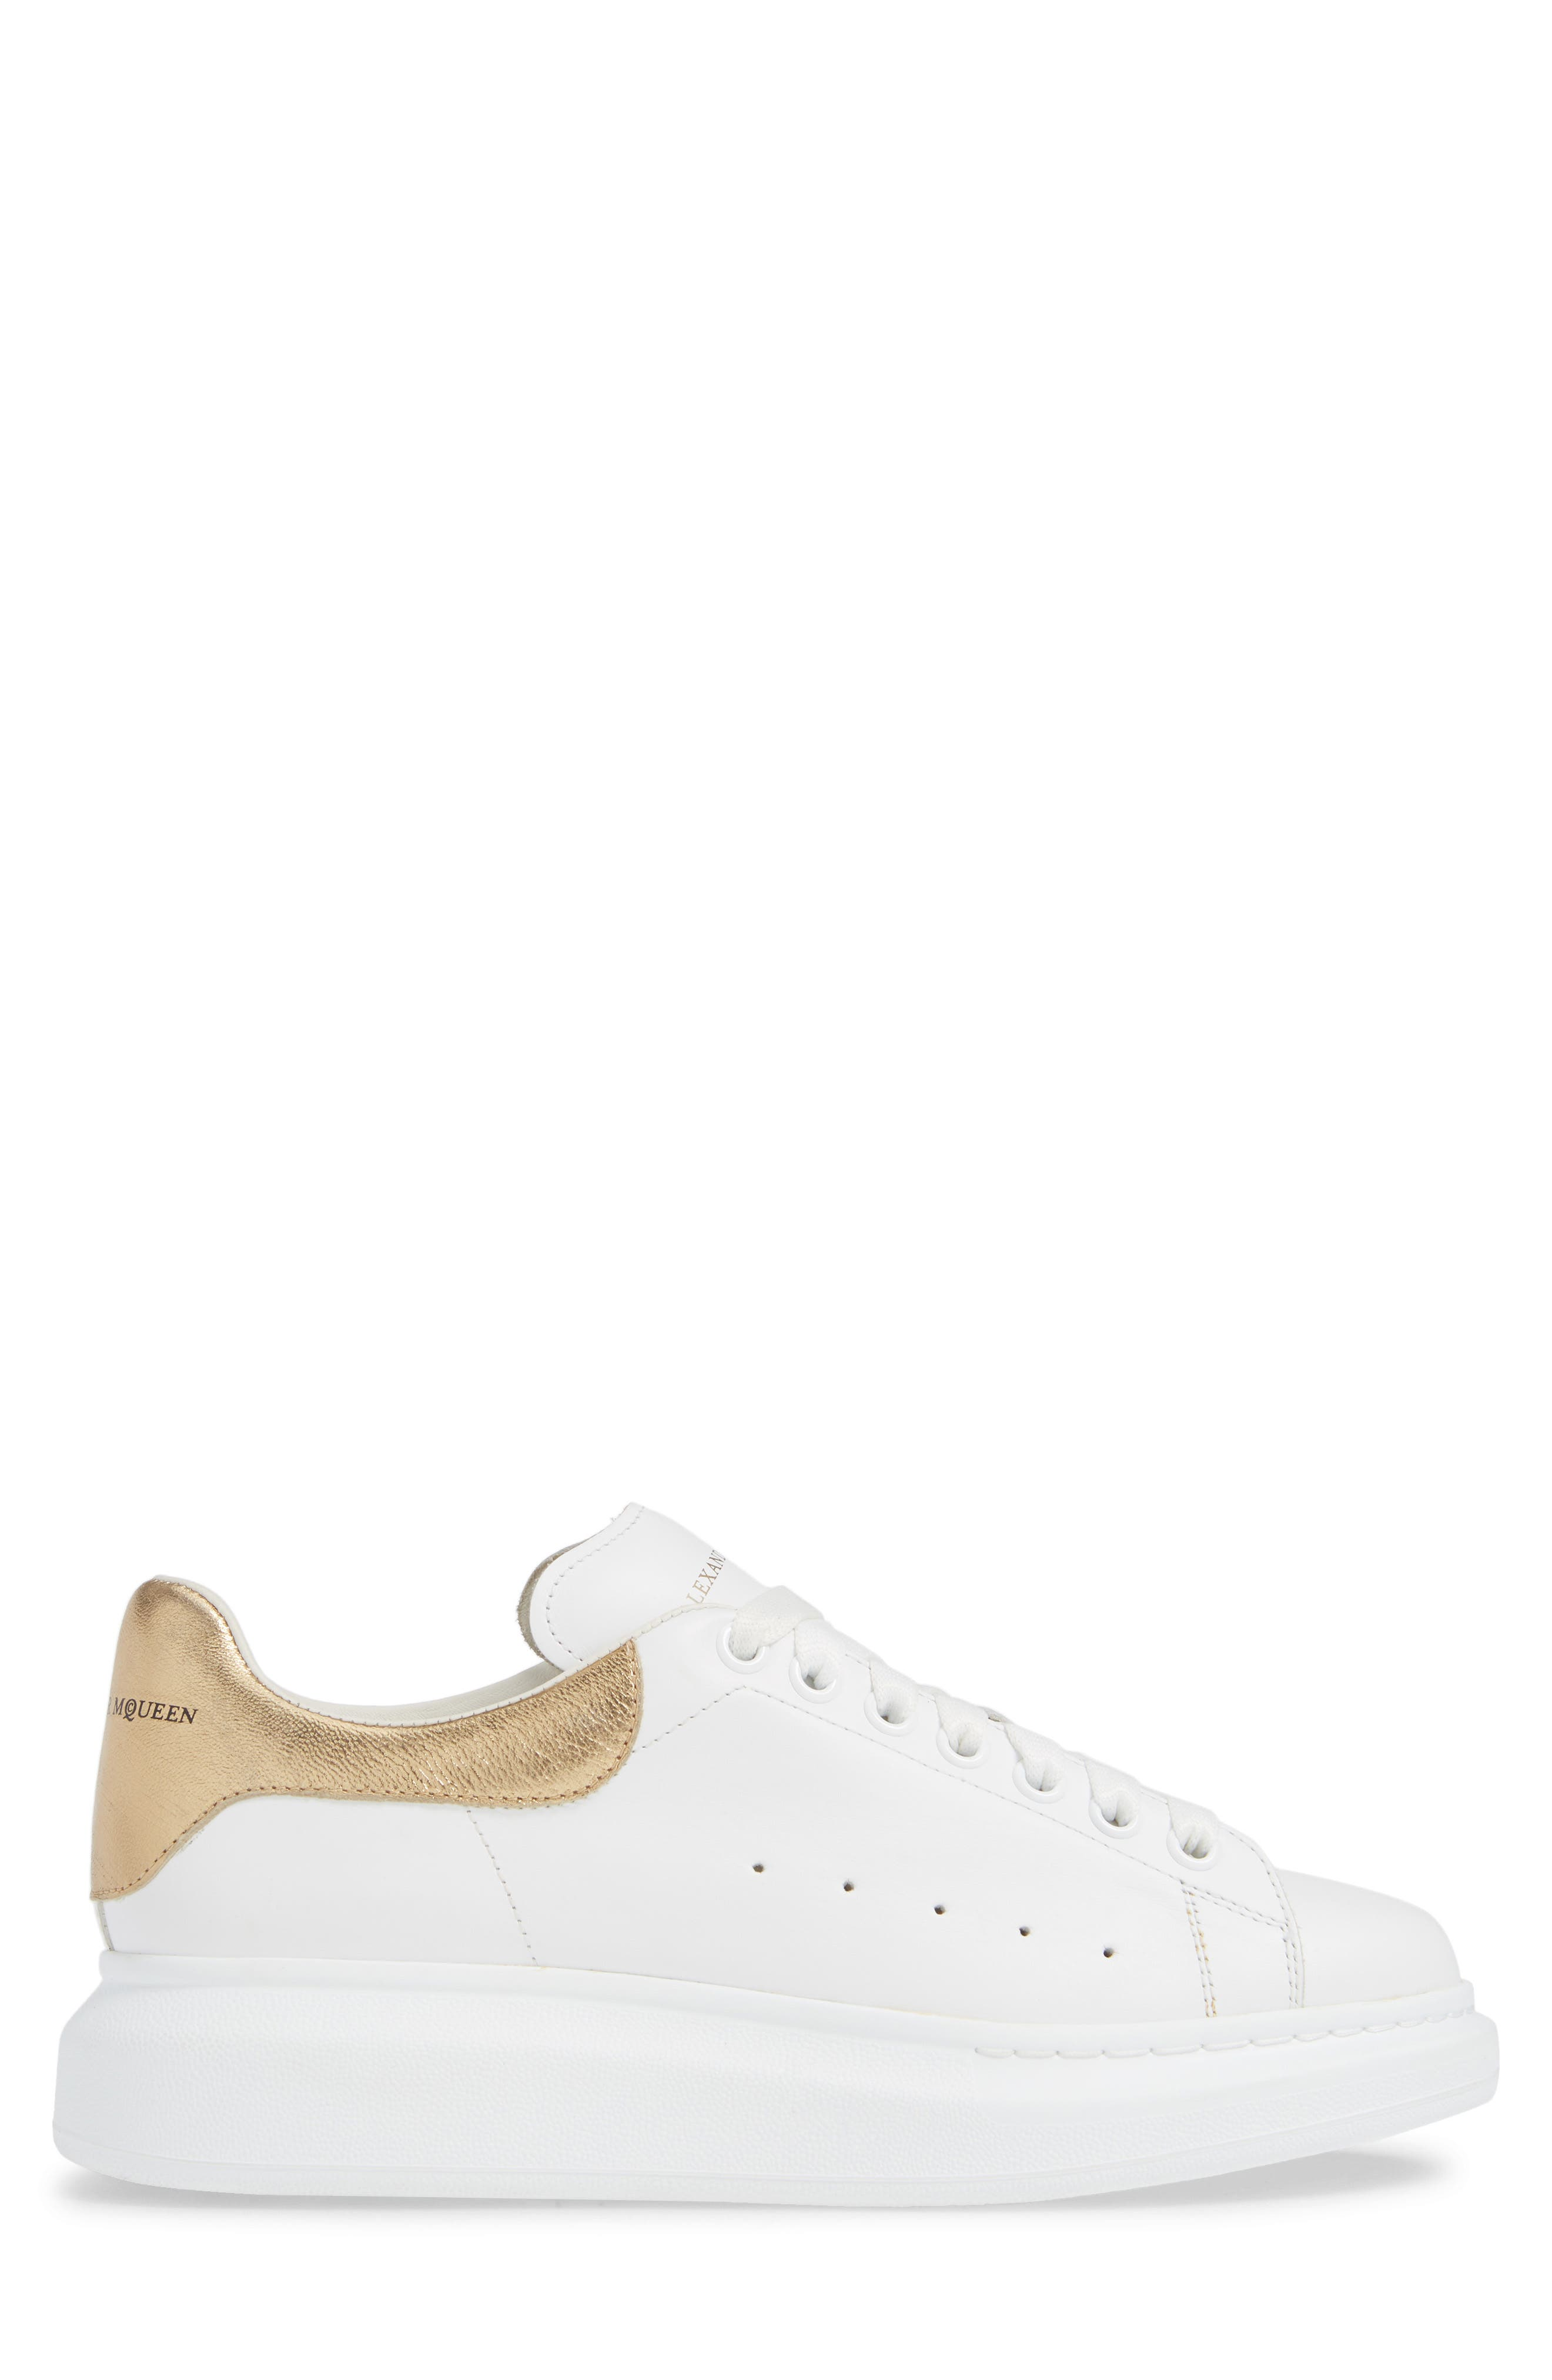 ALEXANDER MCQUEEN, Oversized Sneaker, Alternate thumbnail 3, color, WHITE/ GOLD